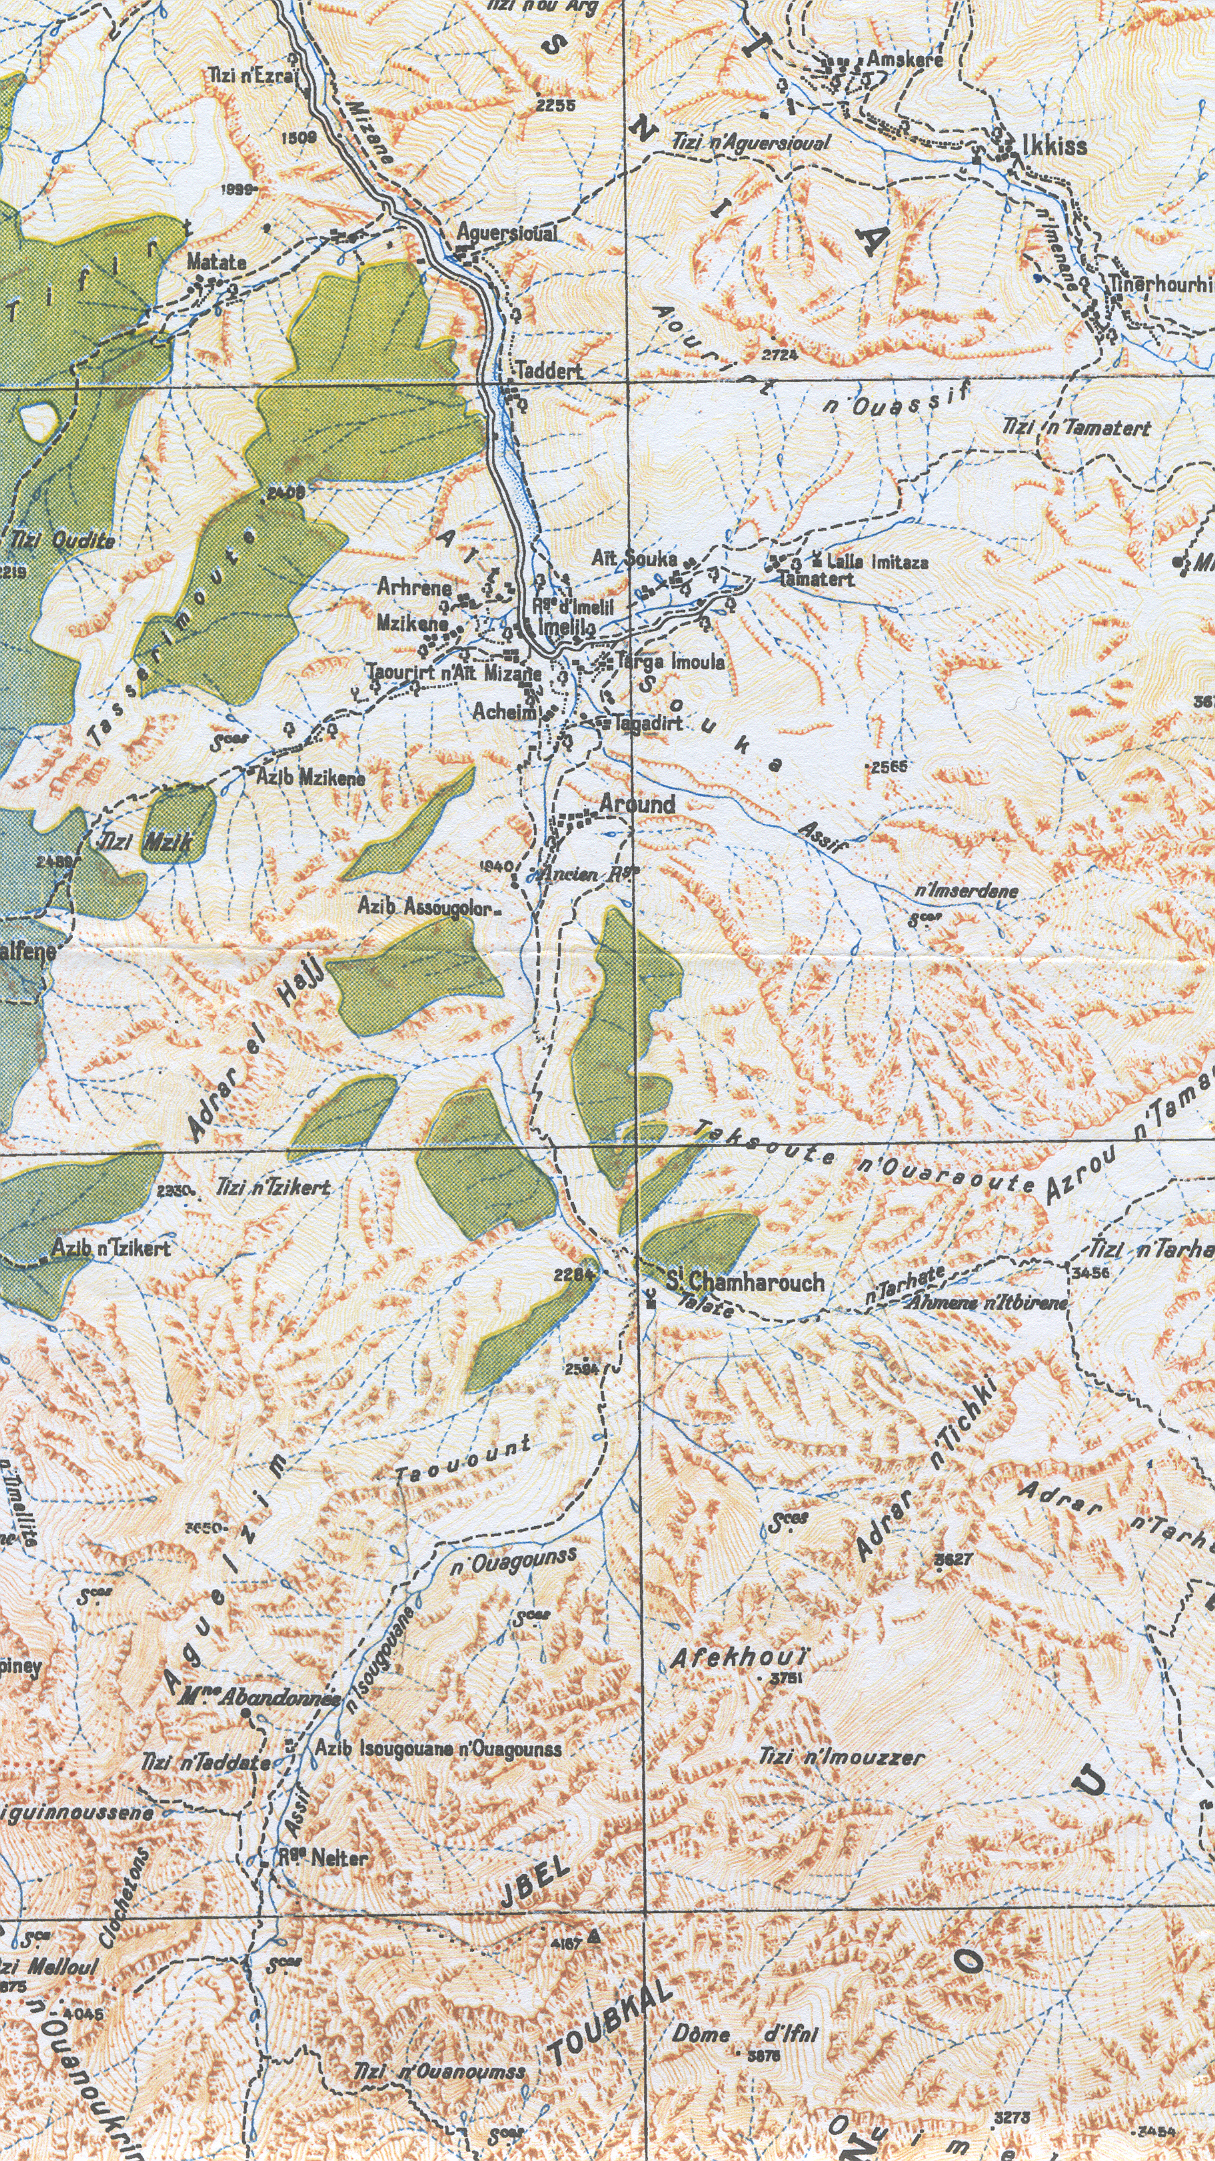 Teaching Resources for geography fieldtrips to Morocco ... on map of africa, map of the us, map of greece, map of senegal, map of the mediterranean, map of tangier, map of atlantic ocean, map of gibraltar, map of fez, map of world, map of romania, map of marrakech, map of nicaragua, map of austria, map of mali, map of algeria, map of honduras, map of saint martin, map of western sahara, map of mongolia,